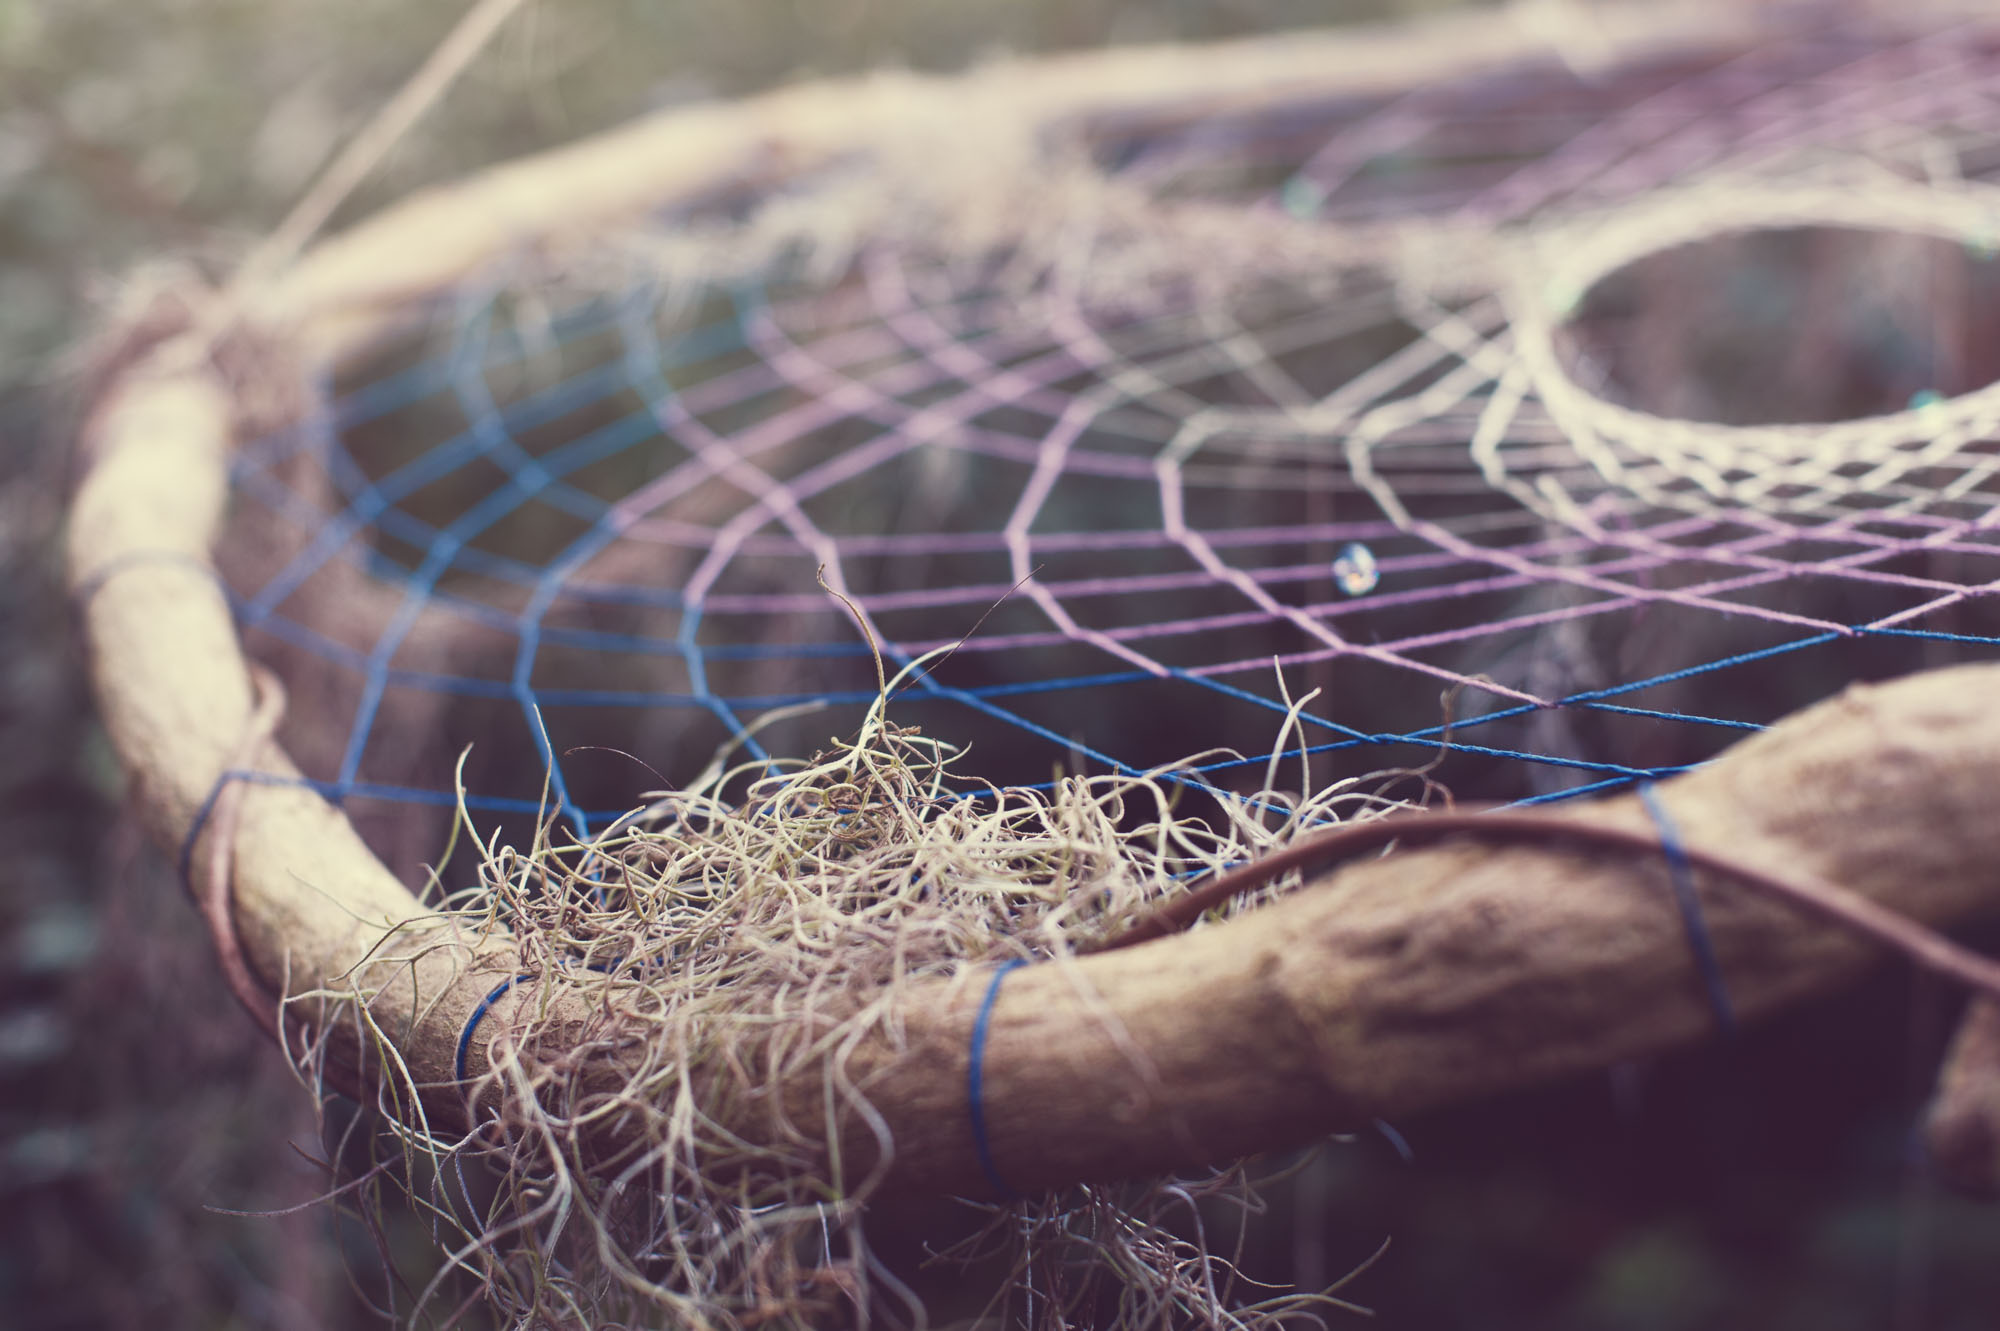 sarahpoephotography.dreamcatchers (21 of 23).jpg